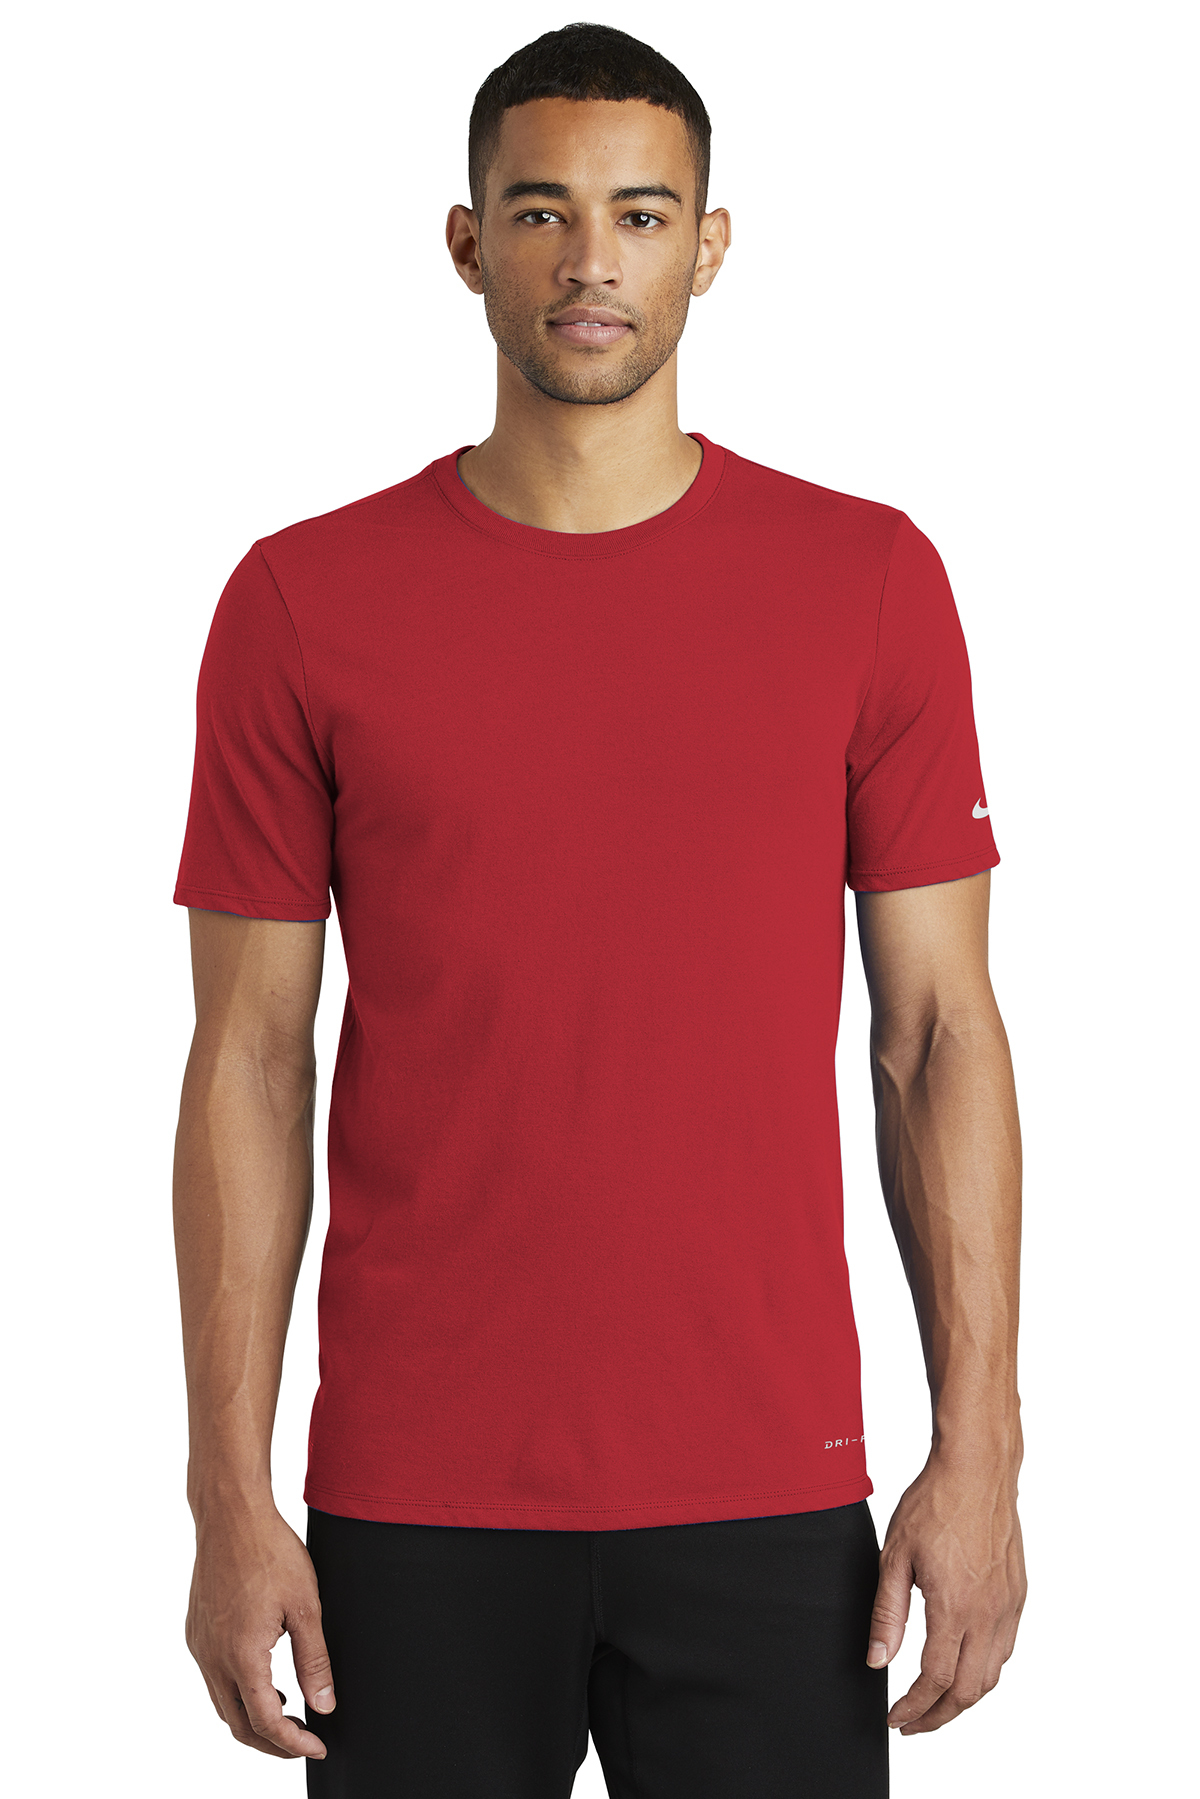 nike dri fit cotton shirt